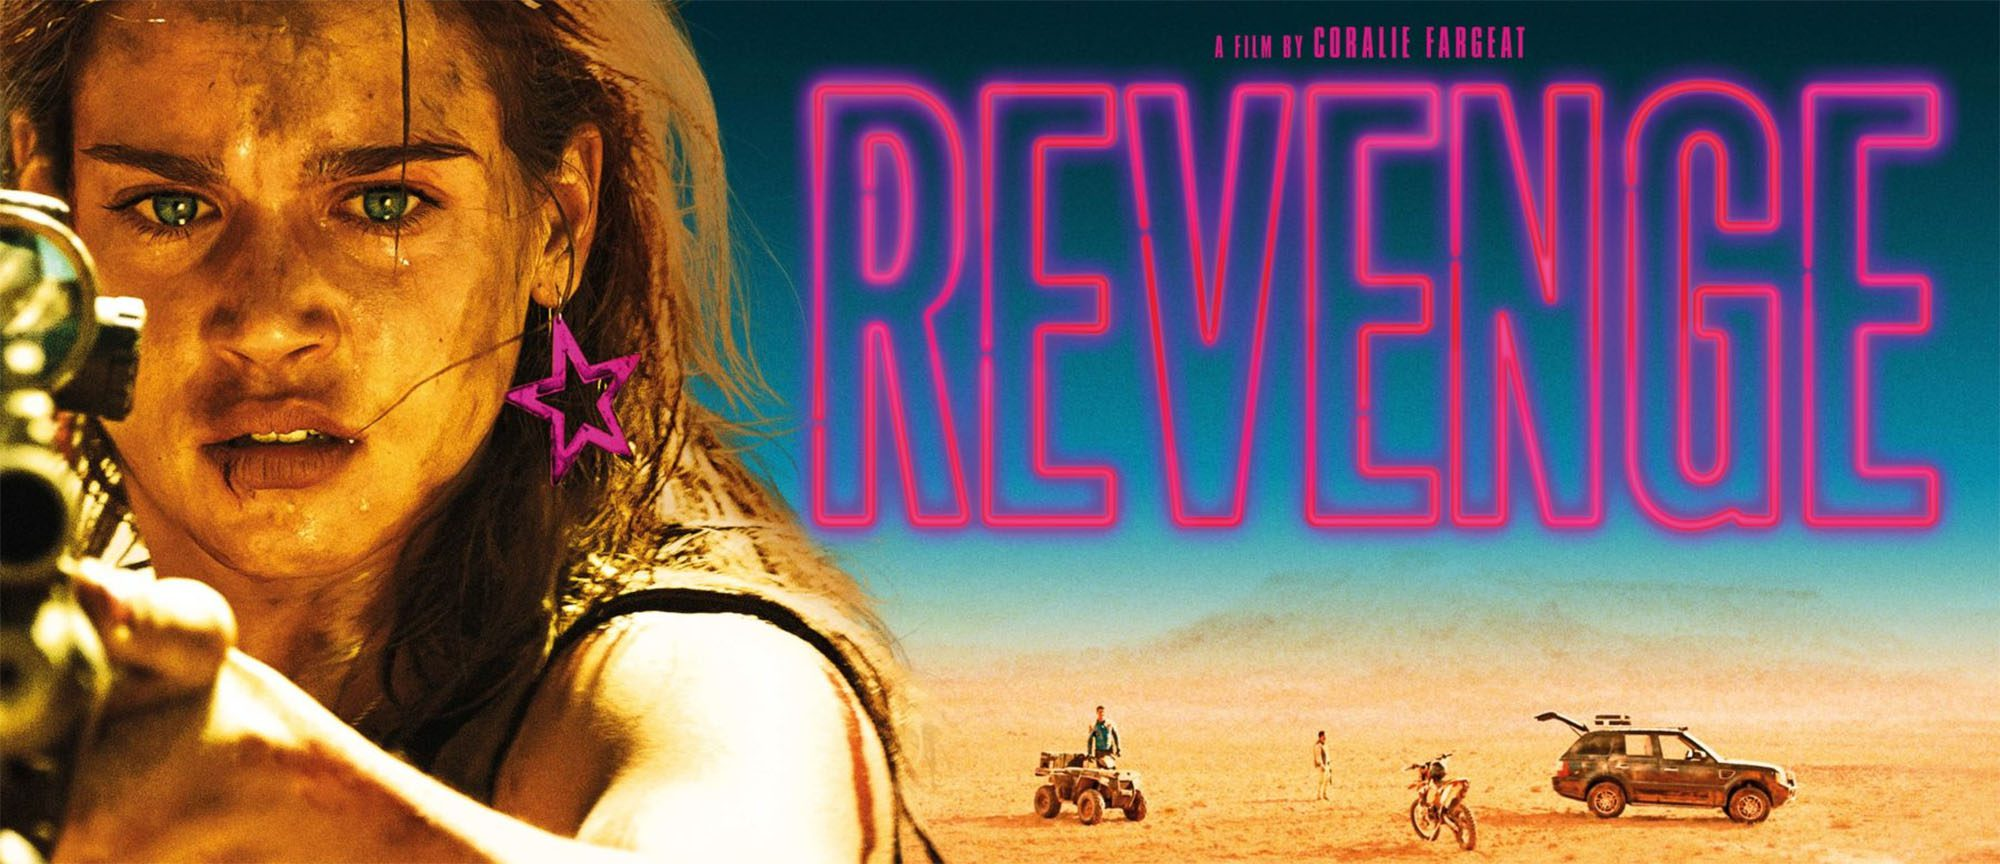 Following the release of Coralie Fargeat's hard-hitting thriller 'Revenge', we're taking a look at some of the best female revenge films from the past several decades. Load 'em up, girls – it's hunting time!